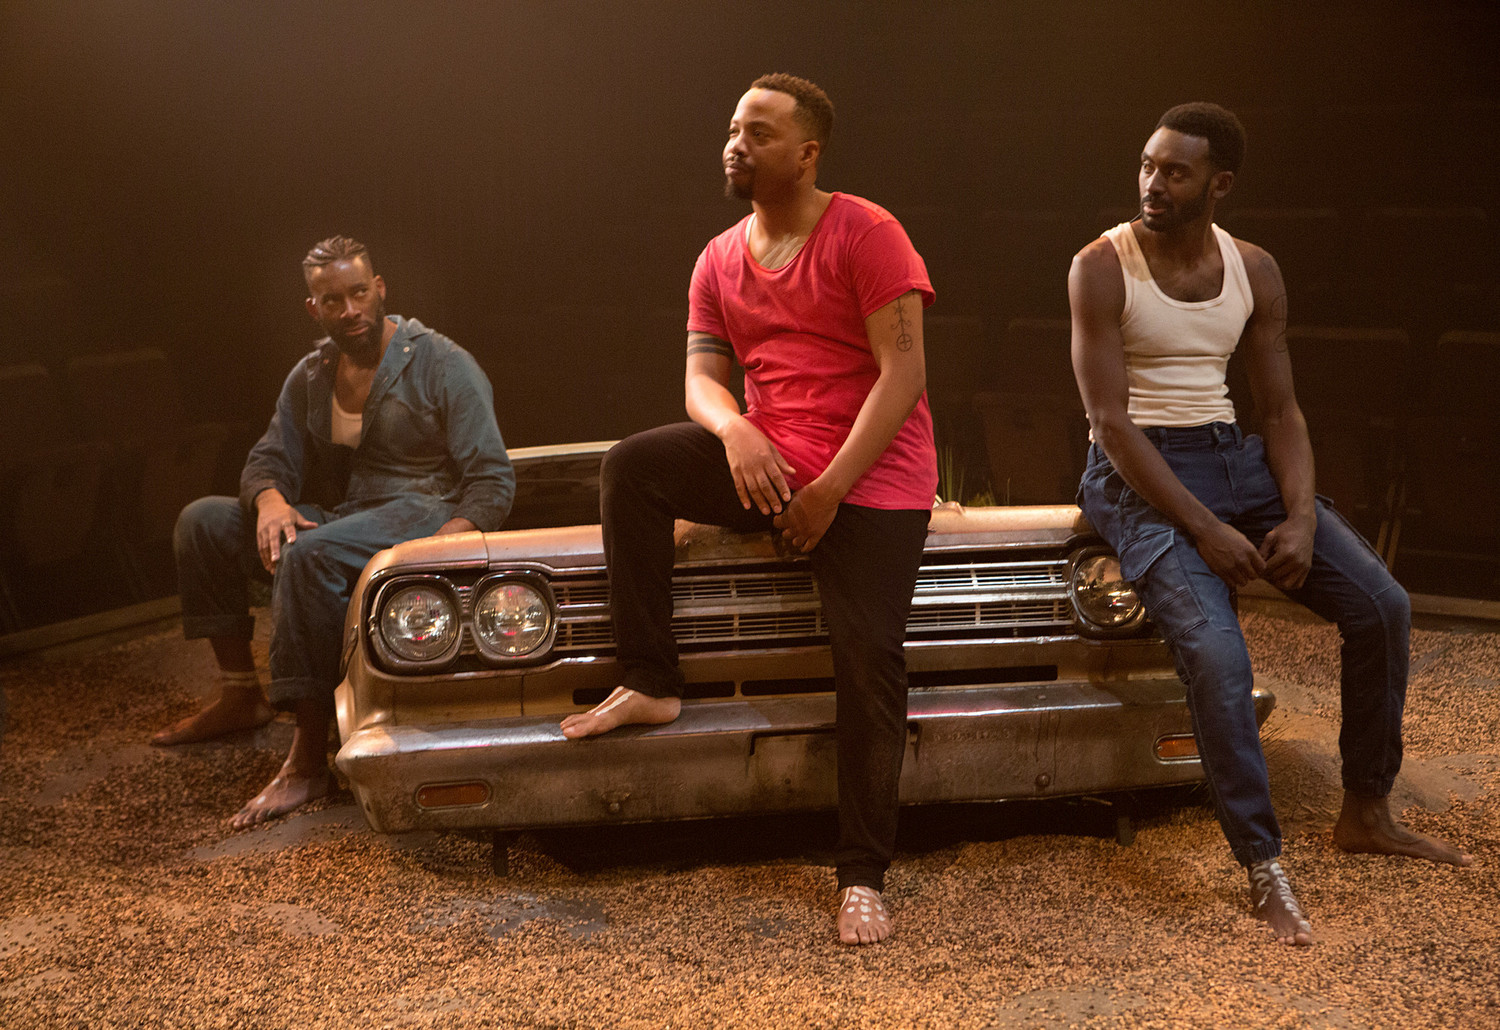 BWW Review: Familial Bonds and Tradition Ground THE BROTHERS SIZE in Moving Production